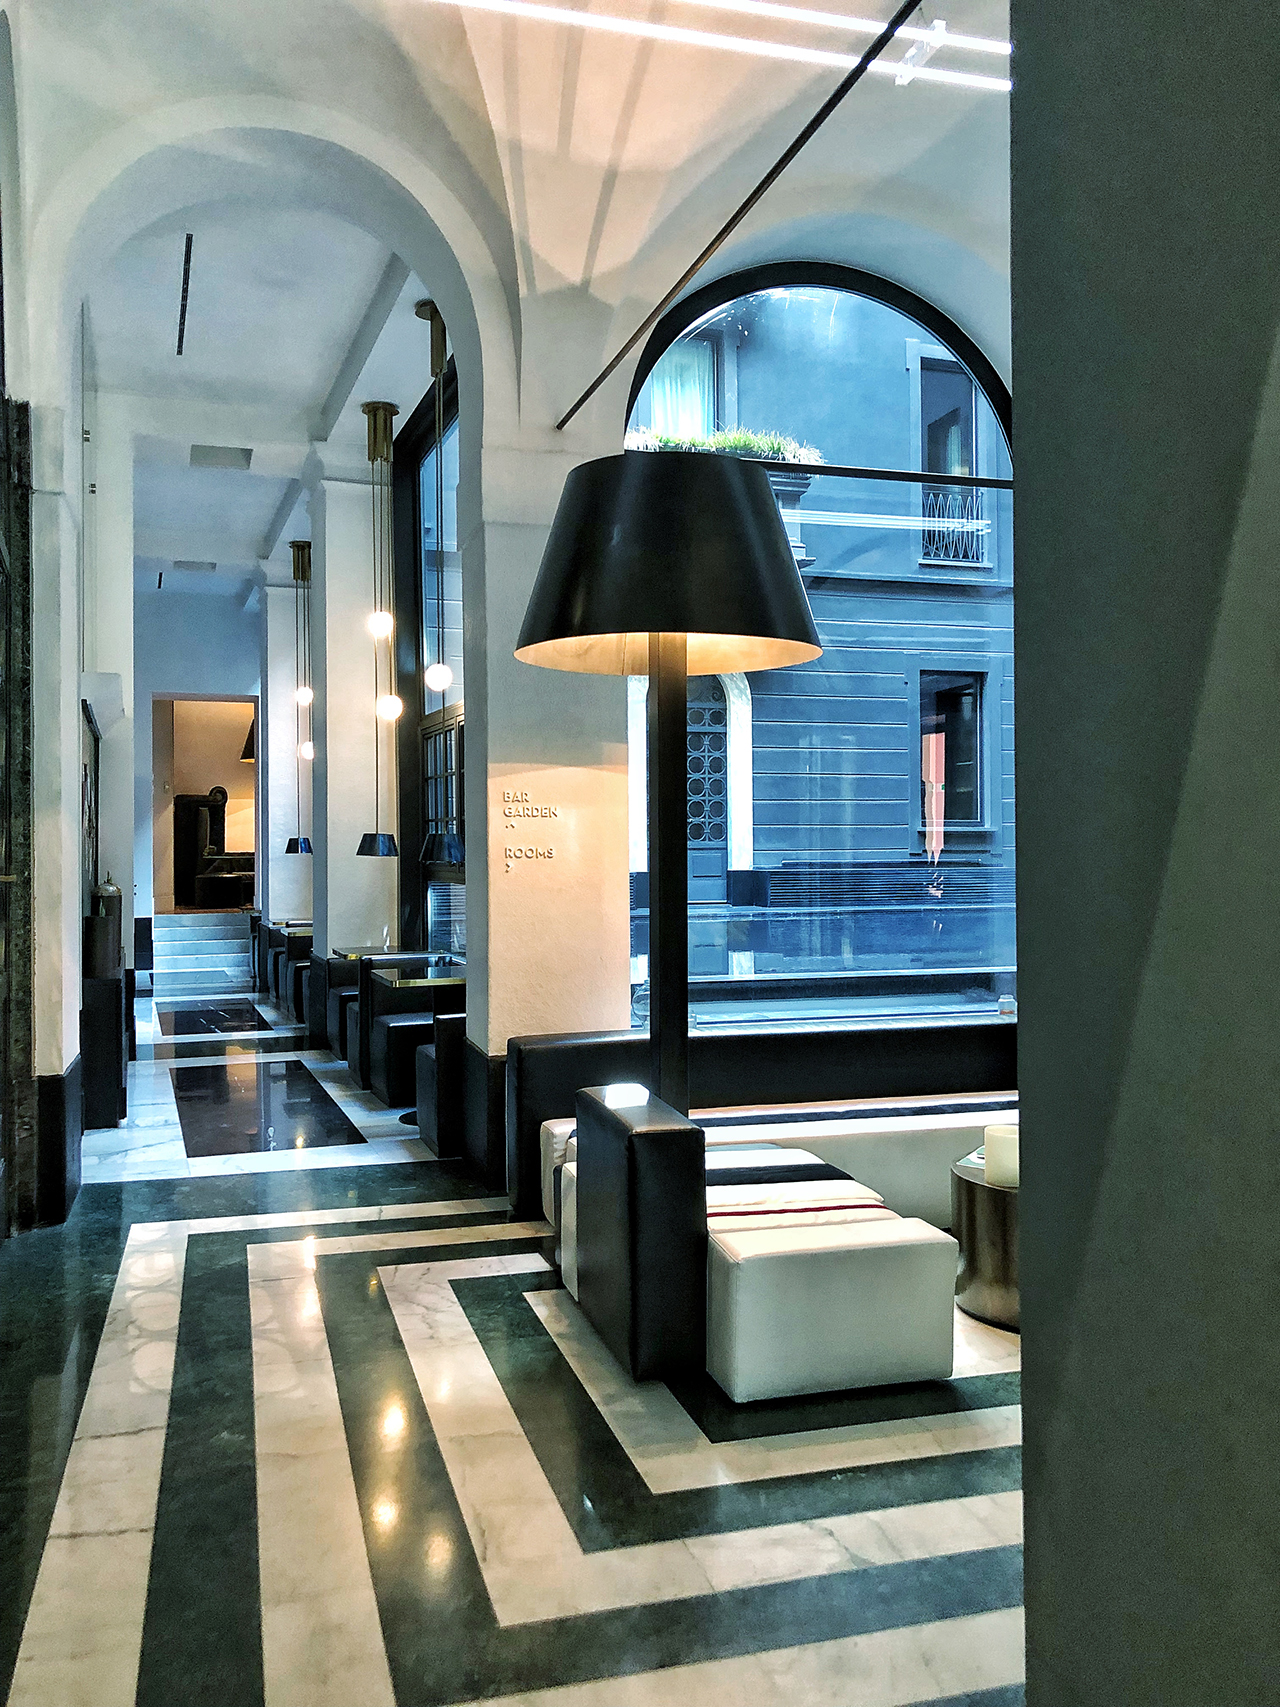 Milan City Guide These Are The Top Hotels To Stay In During iSaloni 11 milan city guide Milan City Guide: These Are The Top Hotels To Stay In During iSaloni Milan City Guide These Are The Top Hotels To Stay In During iSaloni 12